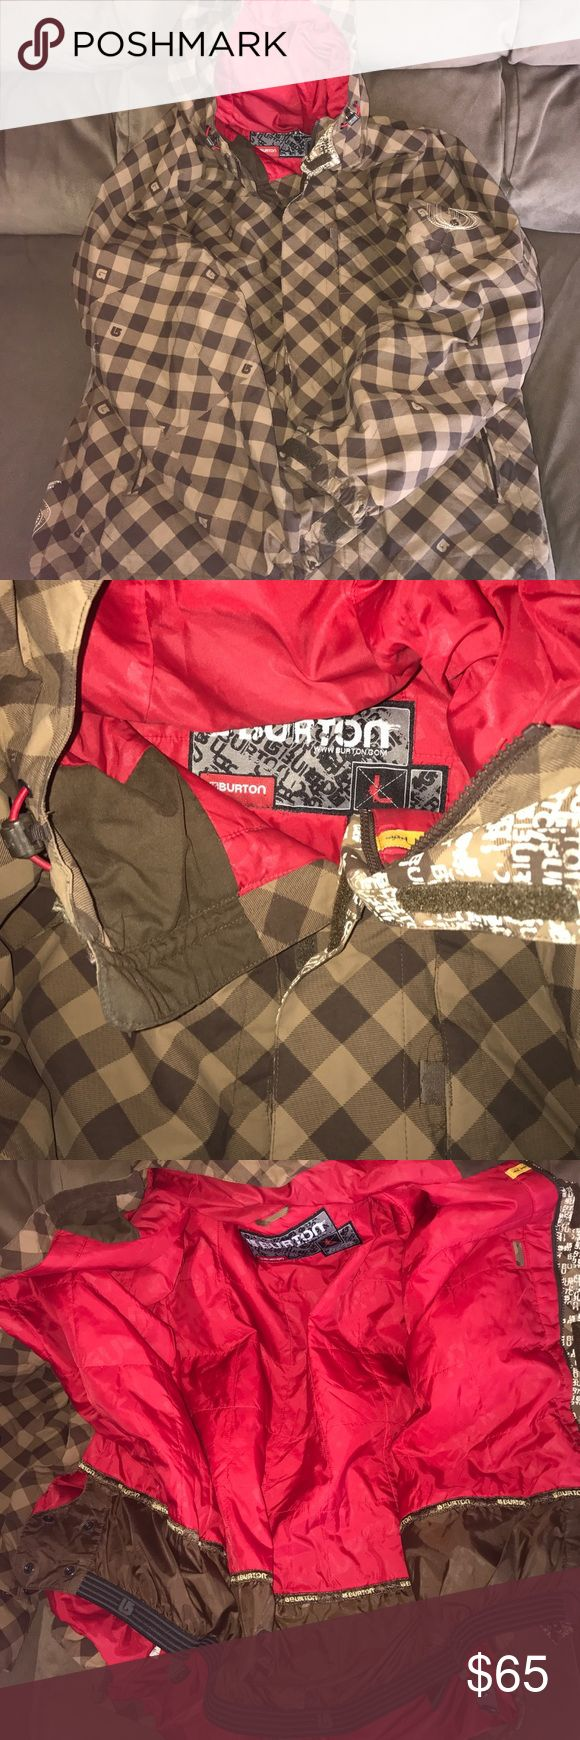 Men's Burton Snow Boarding Coat Size Large Great condition. No holes or stains. Snow skirt, and everything you need for a day out on the mountain. Fits true to size large in men. Price firm unless bundled. No trades or Mercari. Lowest offer is the price listed. Burton Jackets & Coats Ski & Snowboard